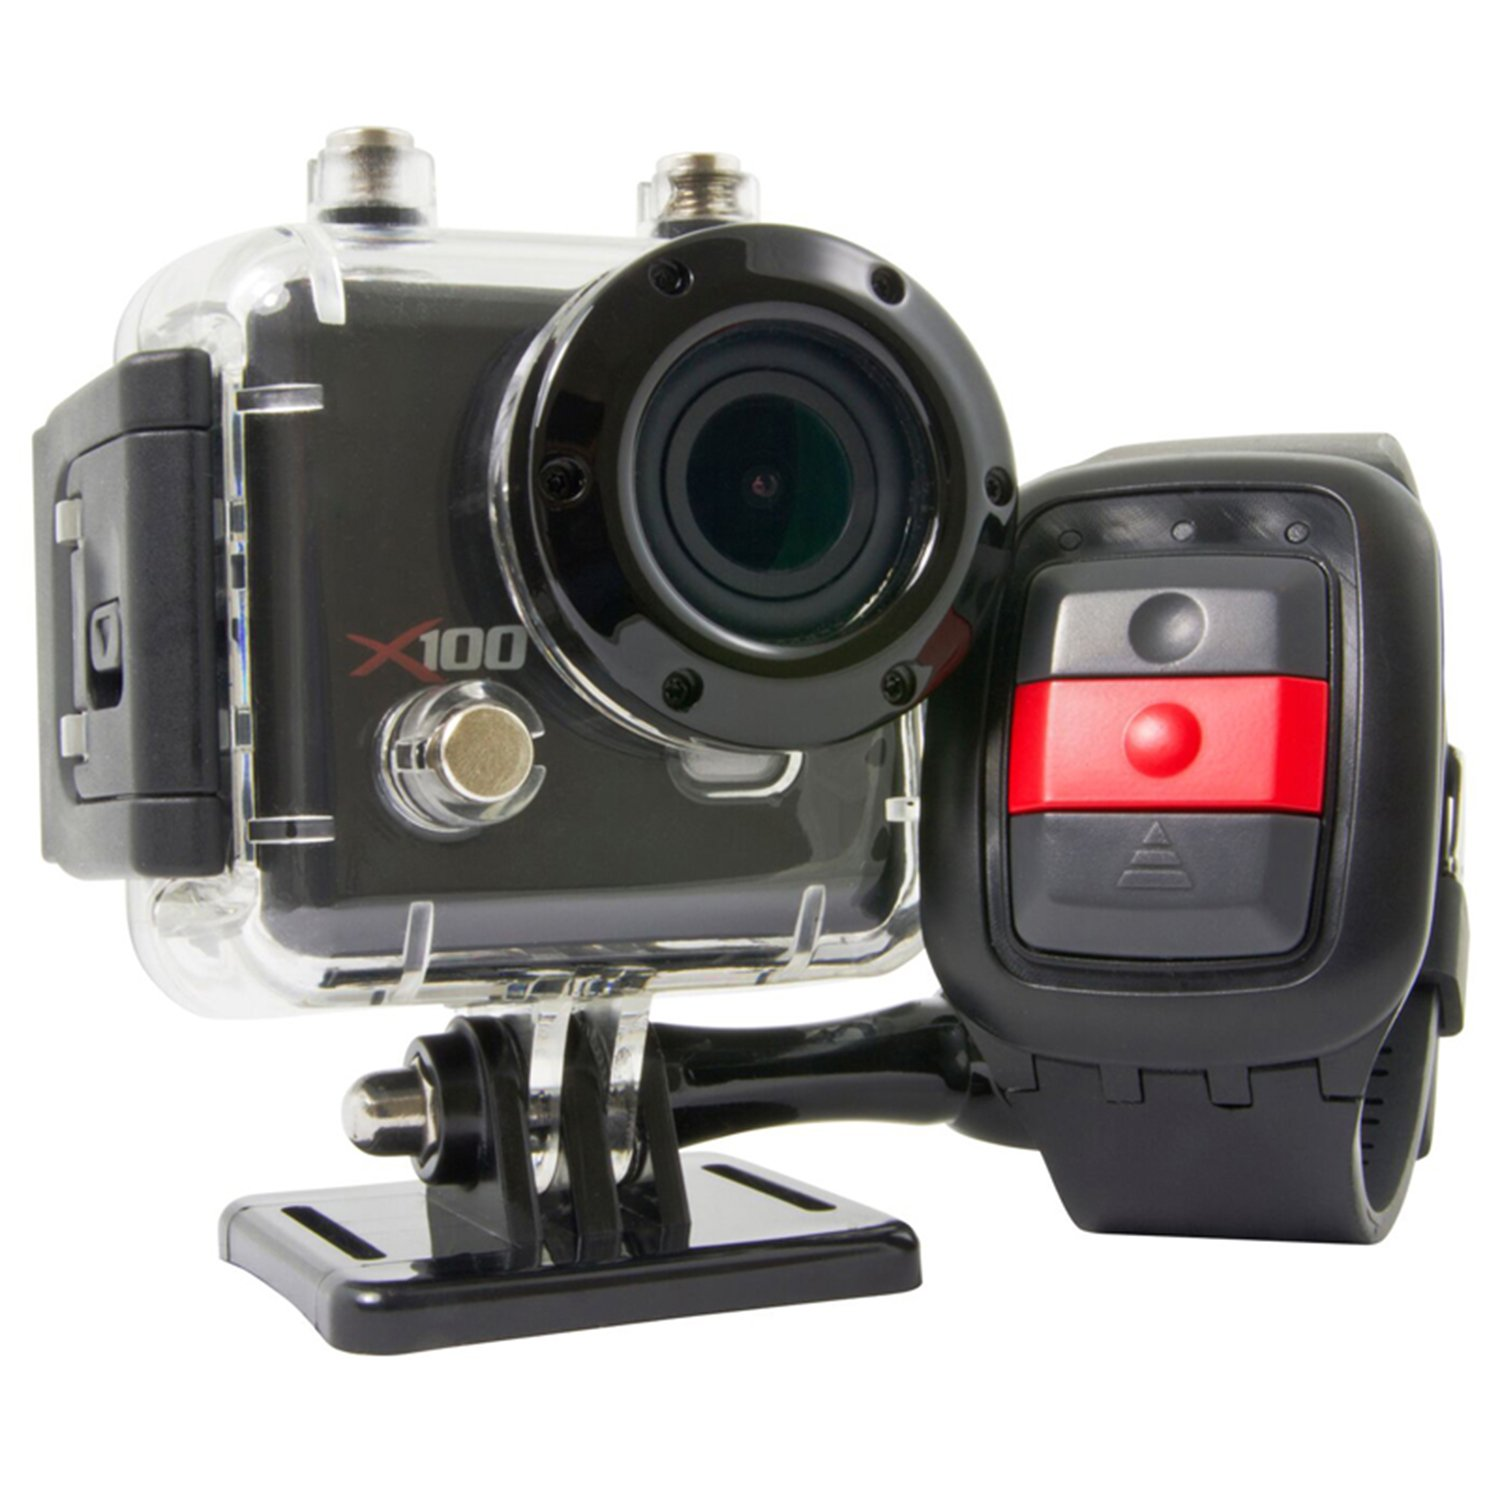 Kaiser Baas X100 Action Camera Windows 7 64-BIT